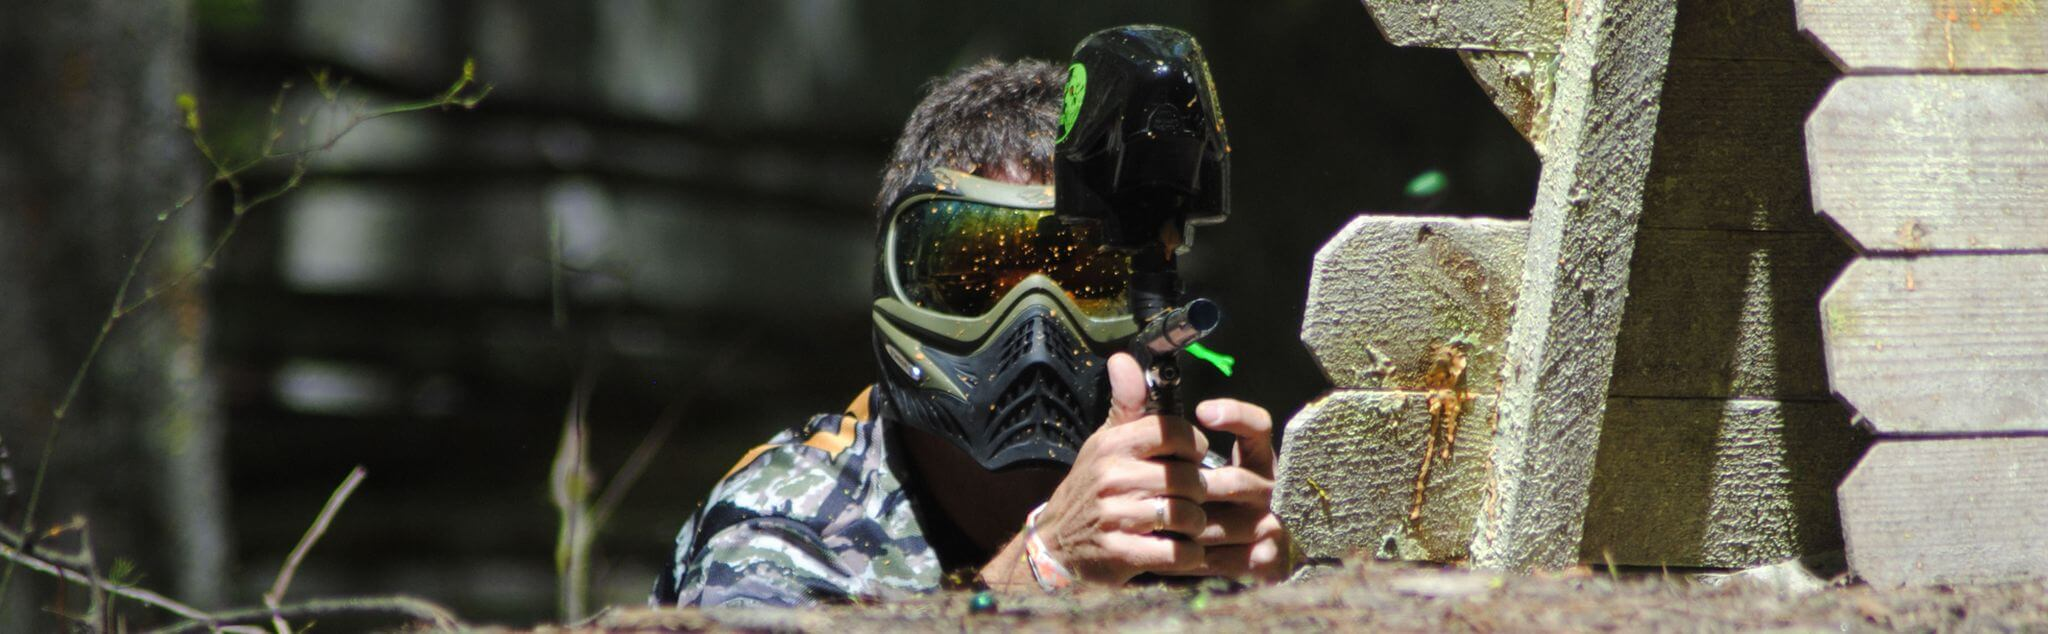 Paintball a Olbia